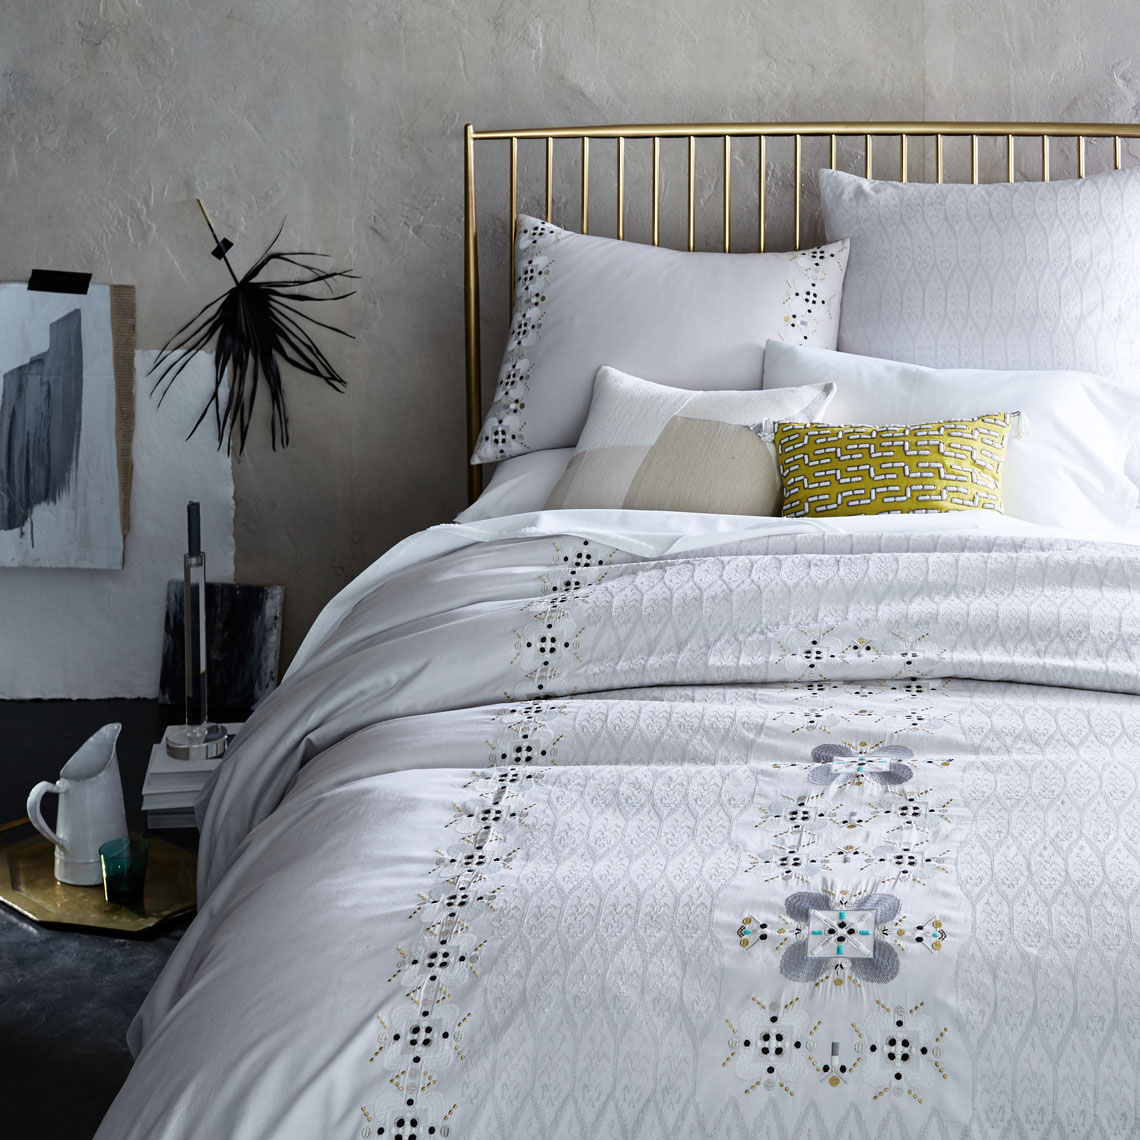 pip-collection-medallion-tile-embroidered-bedding-duvet-frost-grey-fq-std-sham-euro-v2-su17-188